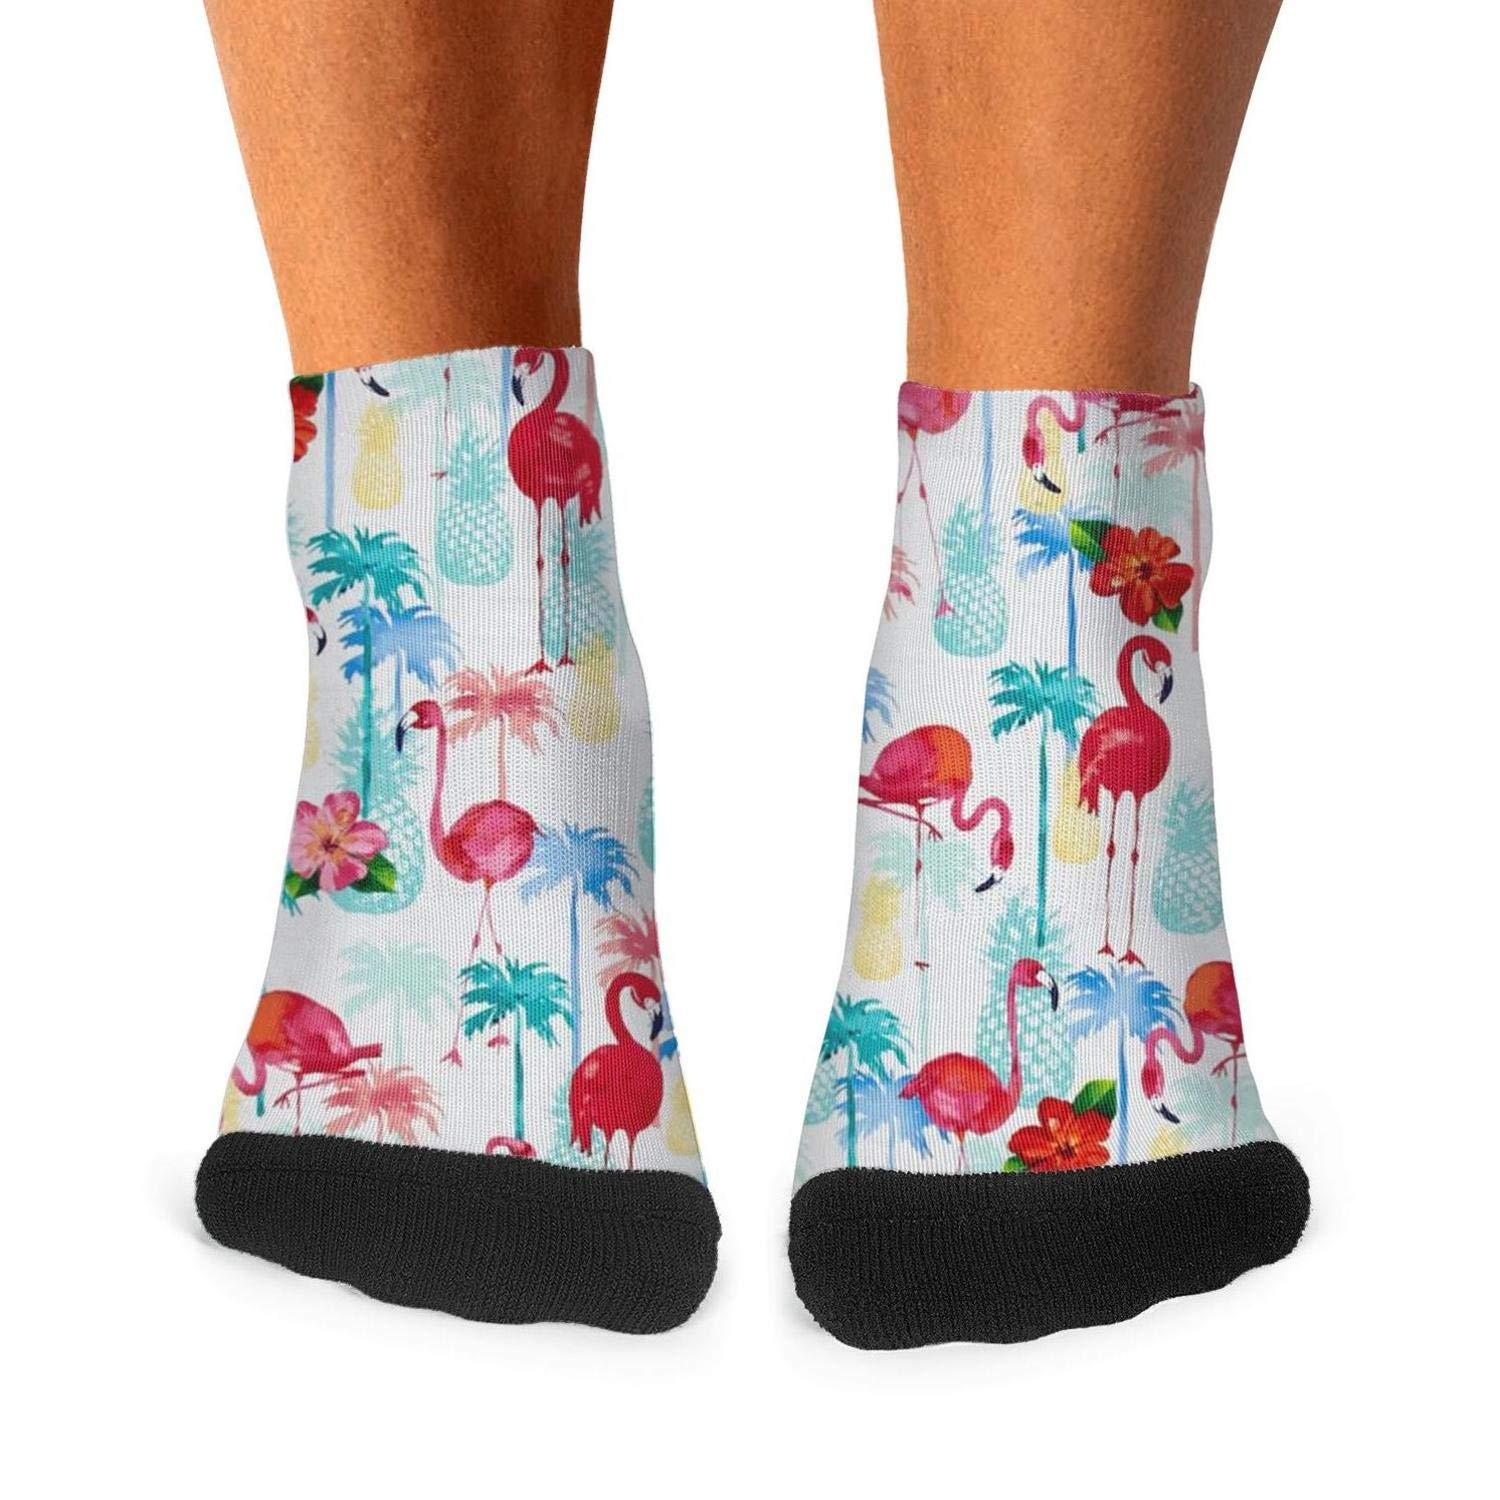 Floowyerion Mens Pineapple Pink Flamingo Coconut Tree Flower Novelty Sports Socks Crazy Funny Crew Tube Socks